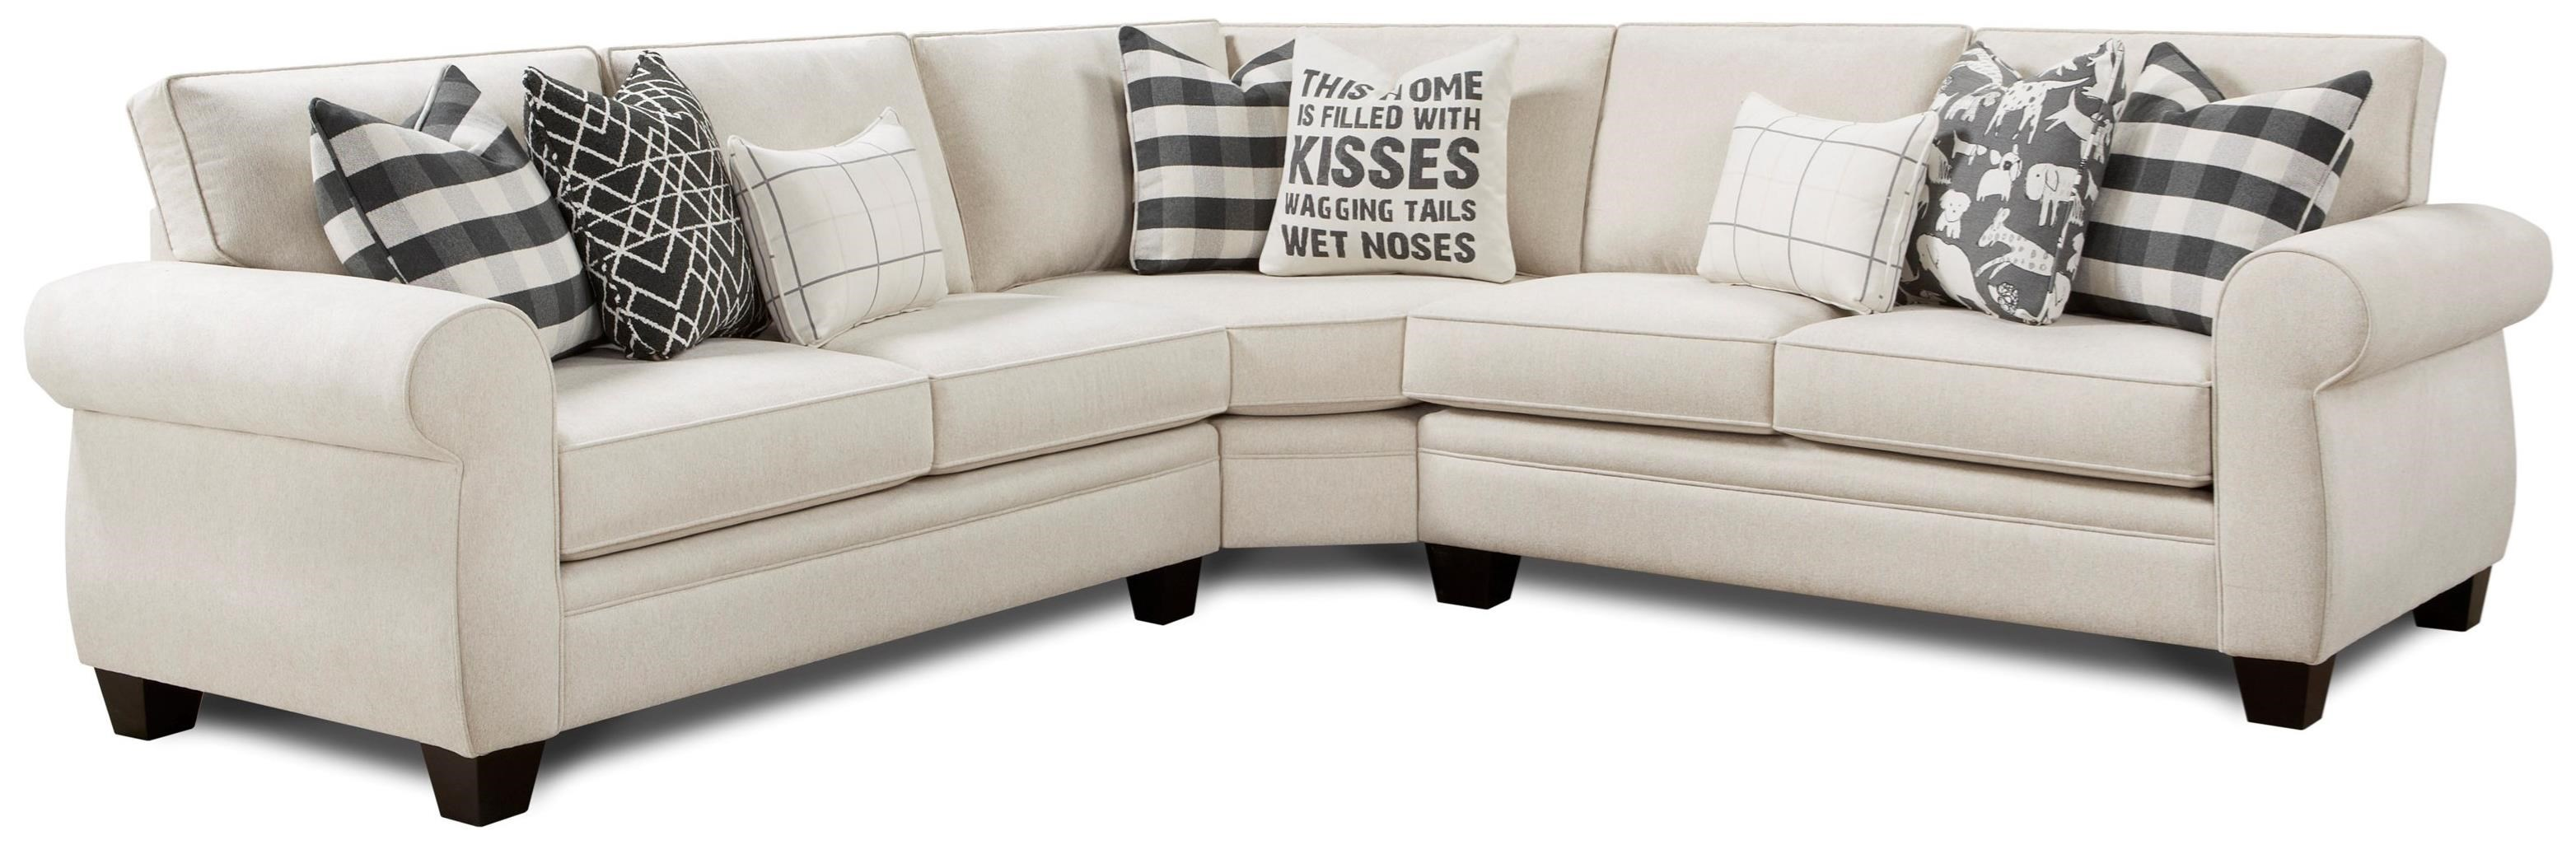 1170 3-Piece Sectional by FN at Lindy's Furniture Company